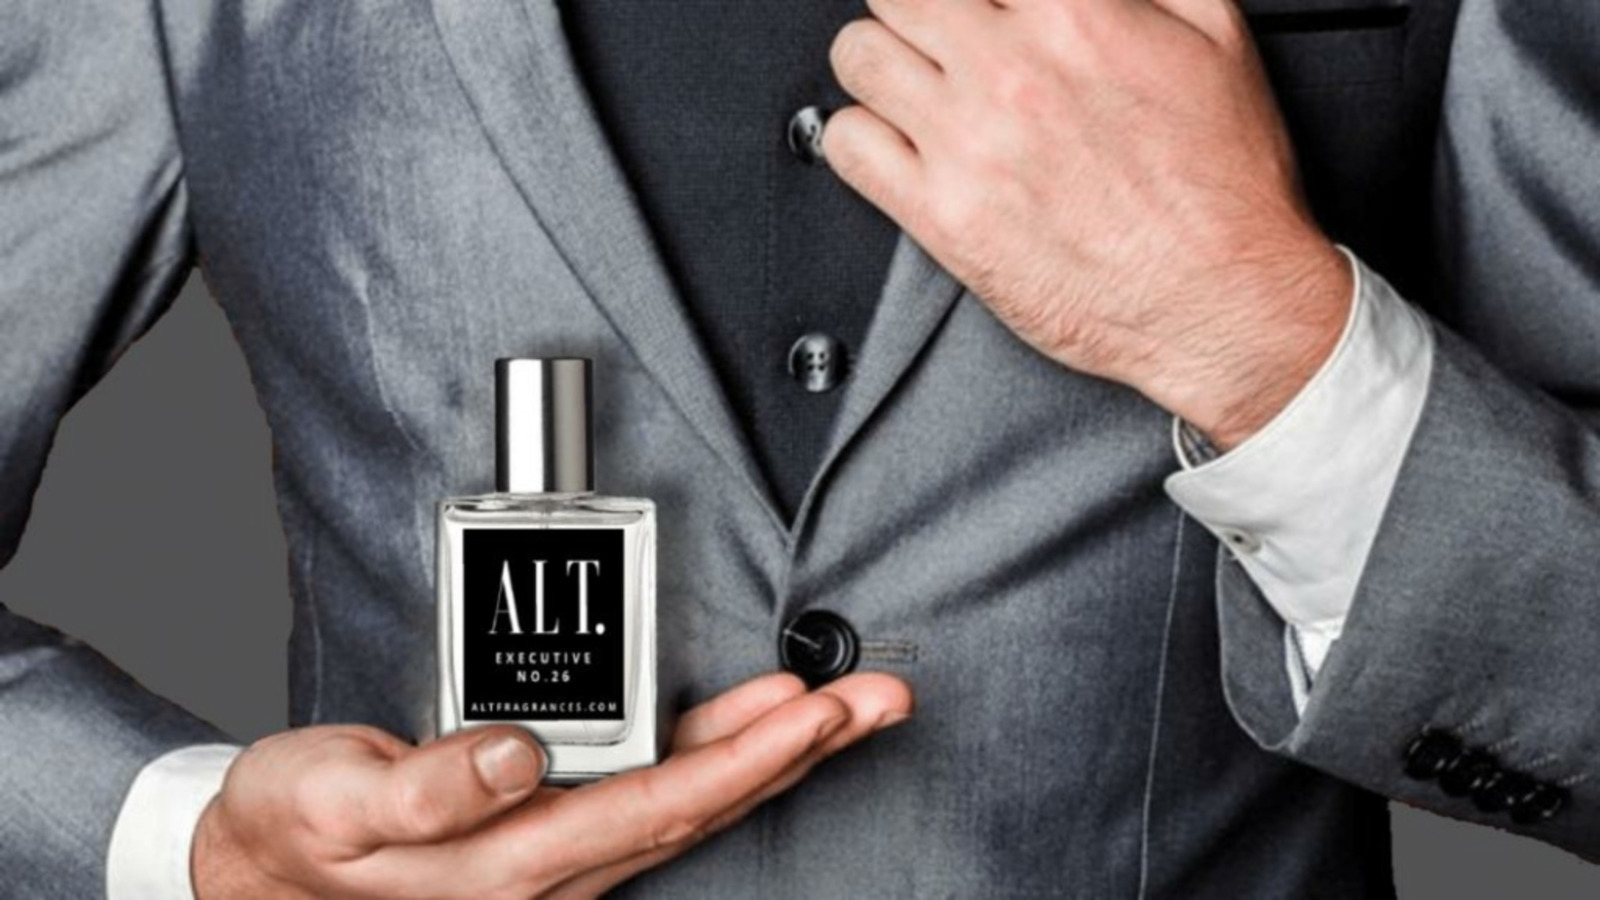 Altfragrances: Brand concept is the key for the business